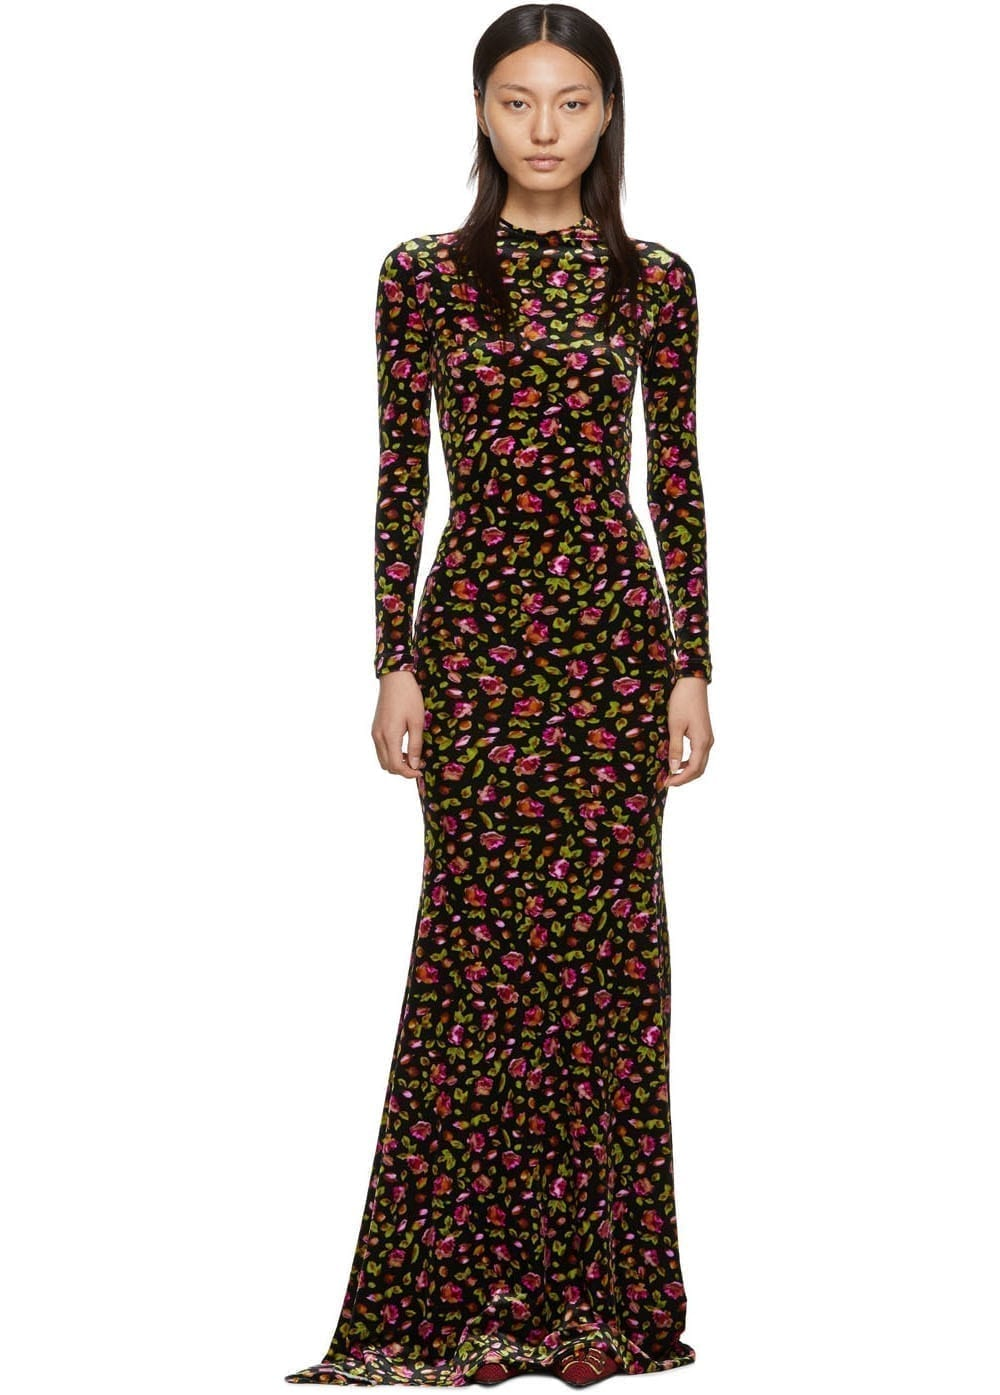 BALENCIAGA Black Velvet Evening Long Dress